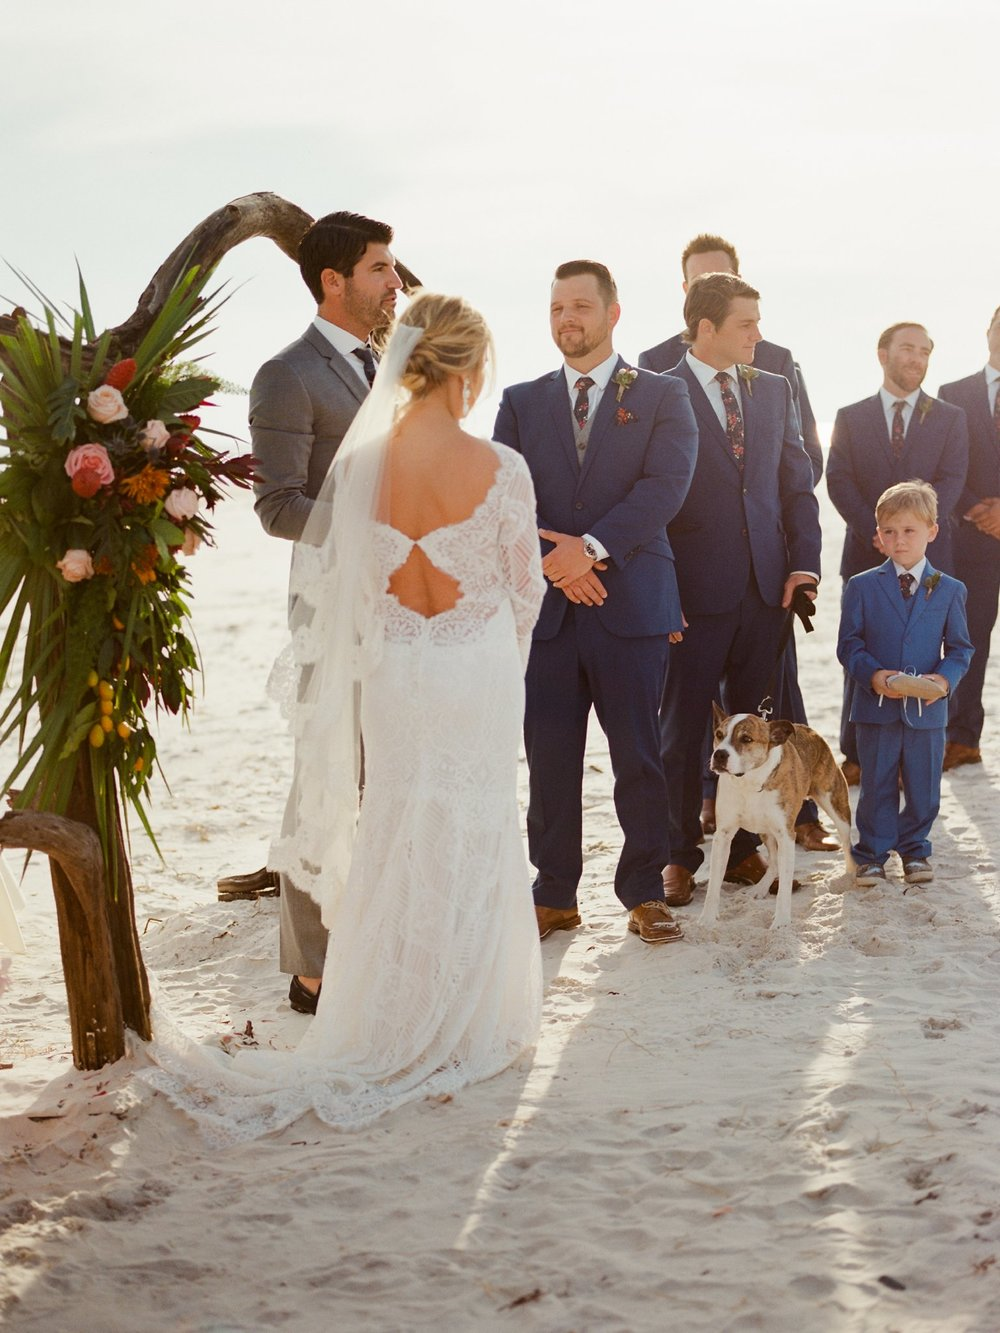 st george island wedding st george island photographer shannon griffin photography_0067.jpg